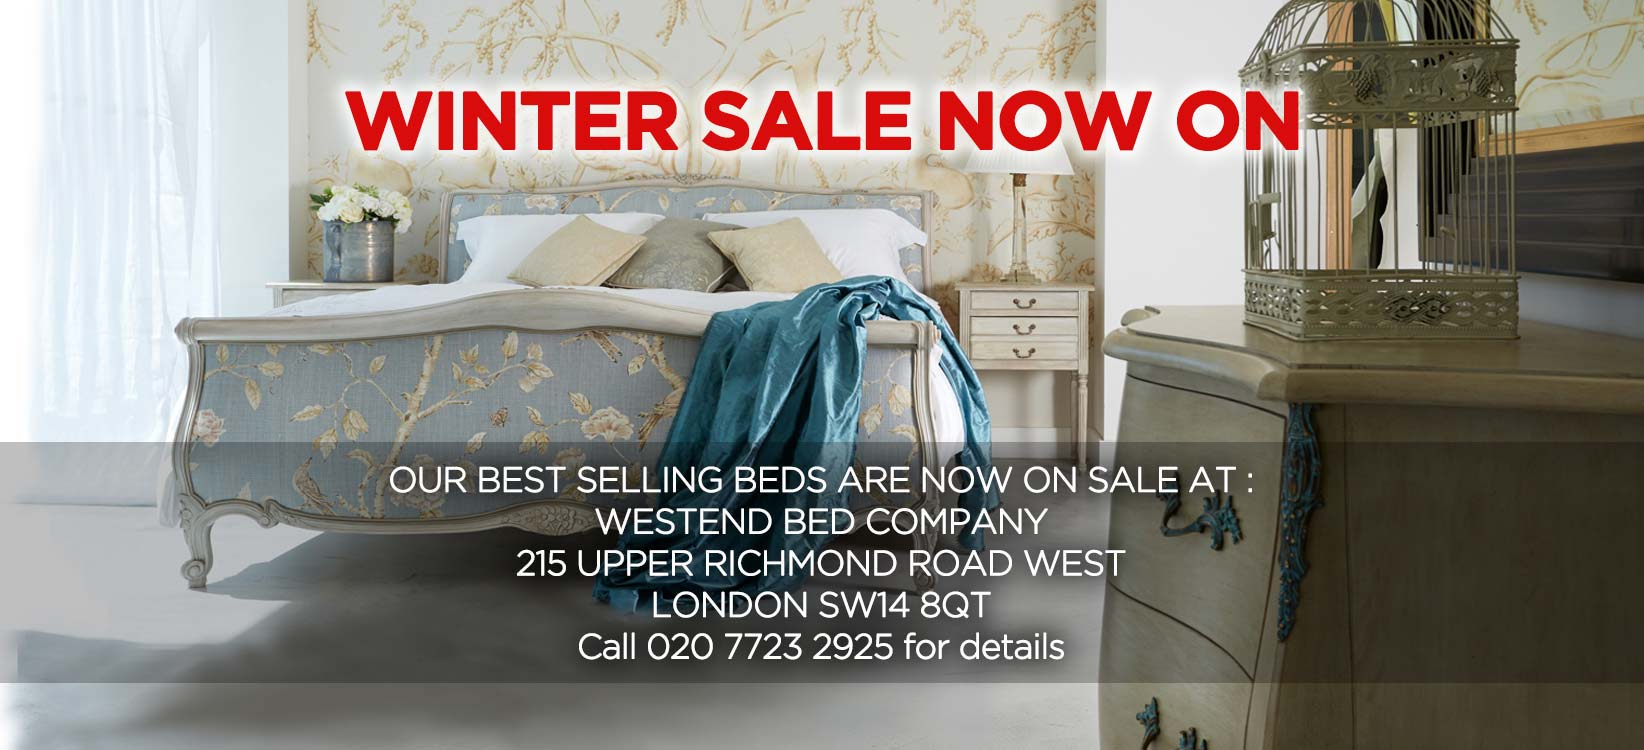 Simon Horn Location Winter Sale